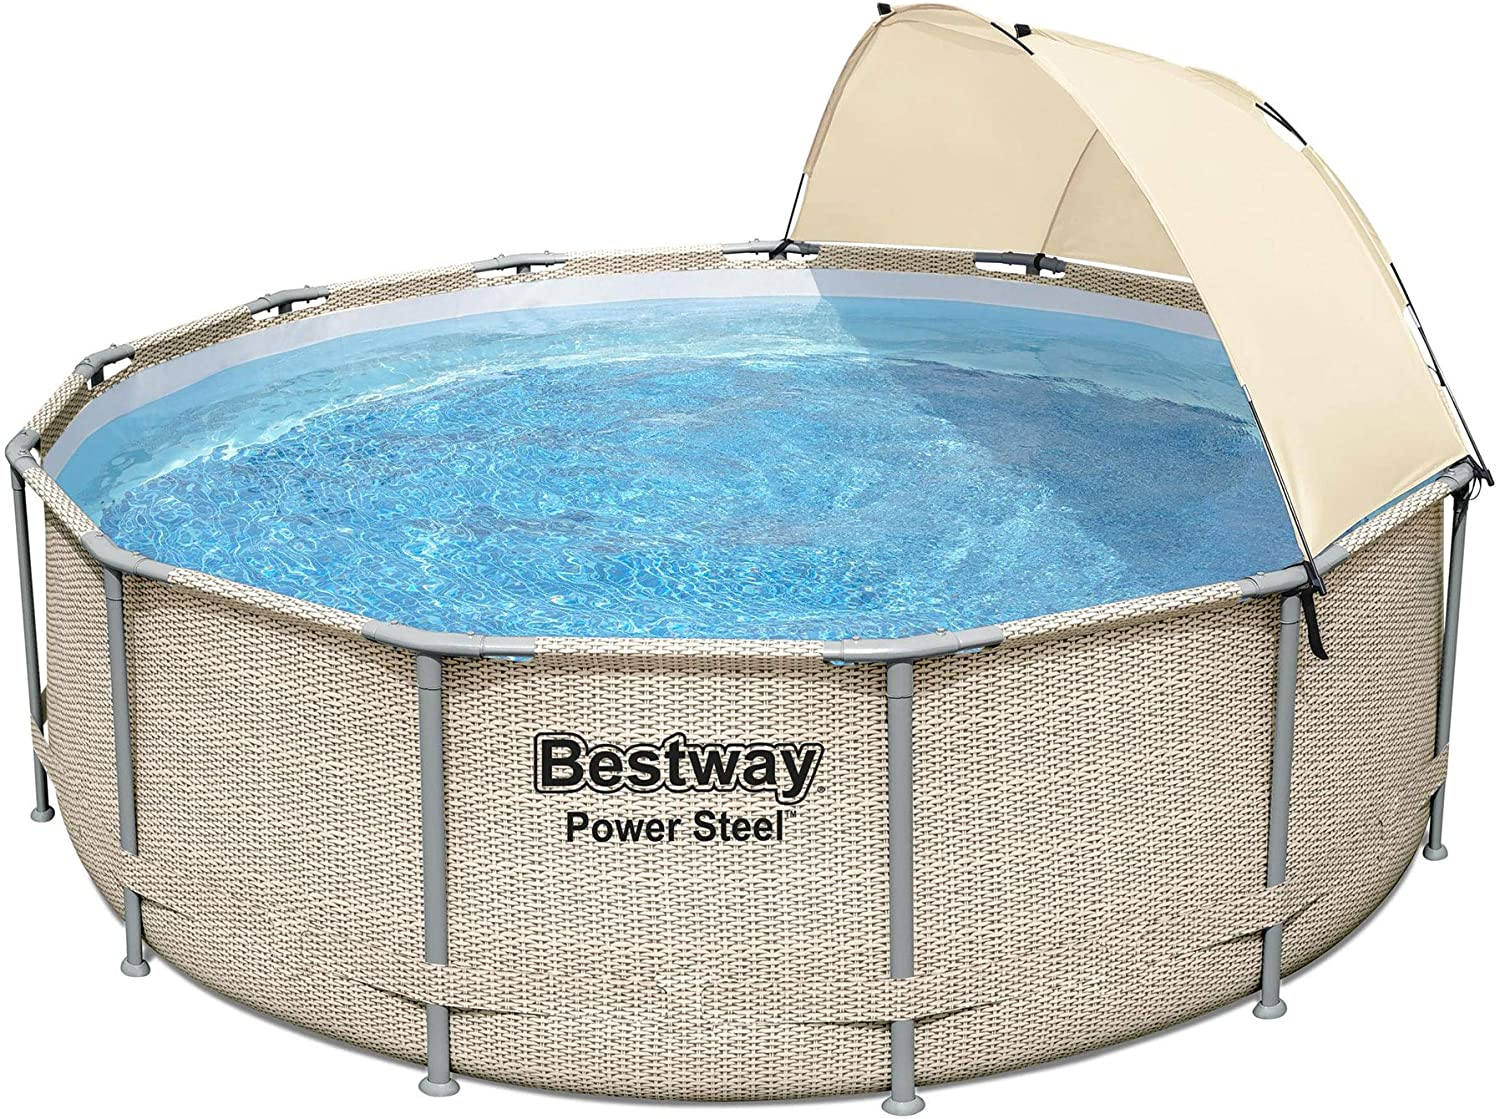 Bestway 5614UE 13 Foot x 42 Inches Power Steel Frame Above Ground Backyard Swimming Pool Set